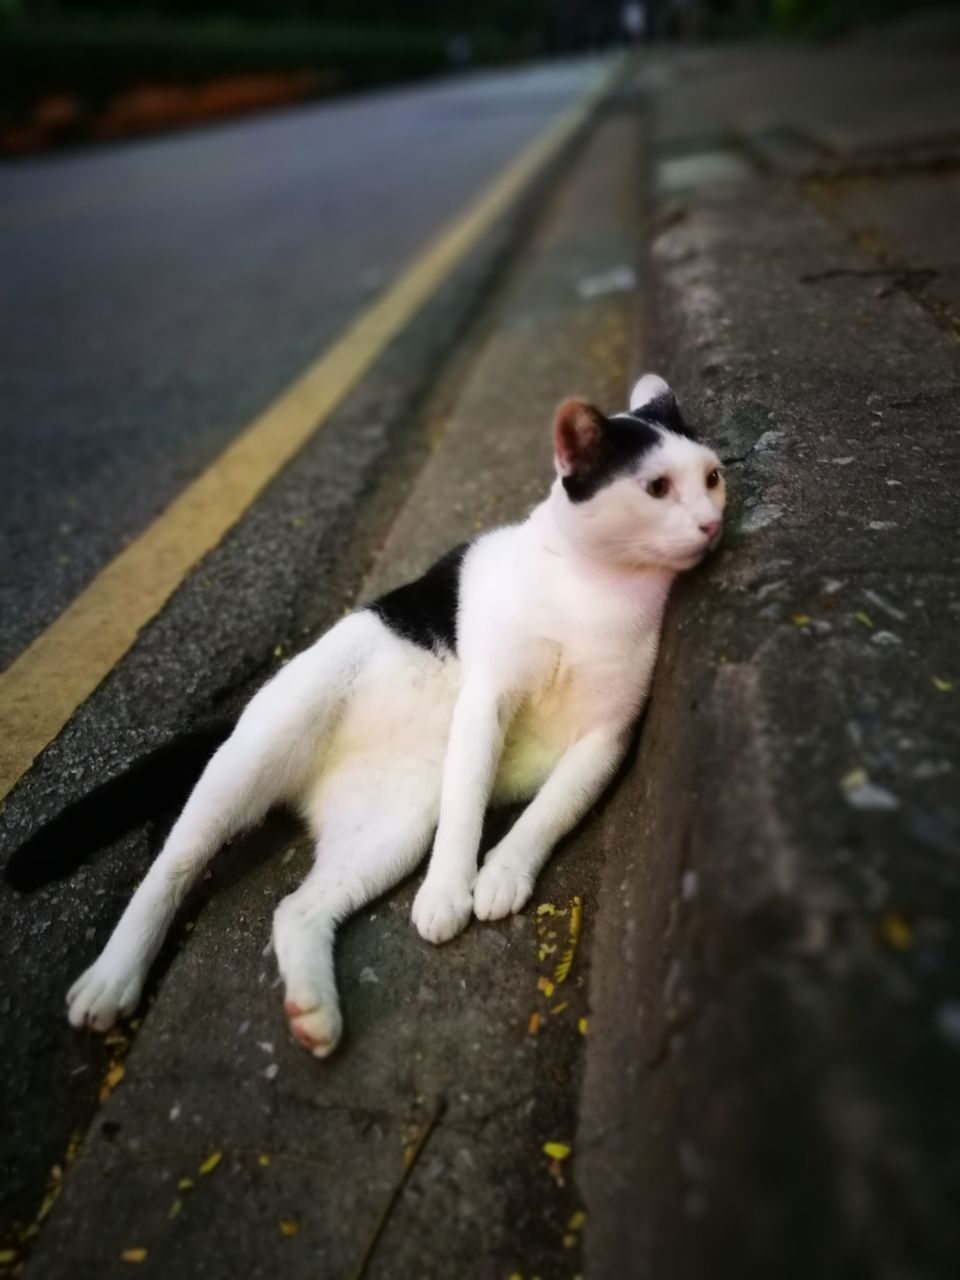 pets, one animal, domestic animals, animal themes, domestic cat, mammal, feline, outdoors, street, day, no people, looking at camera, road, portrait, sitting, dog, nature